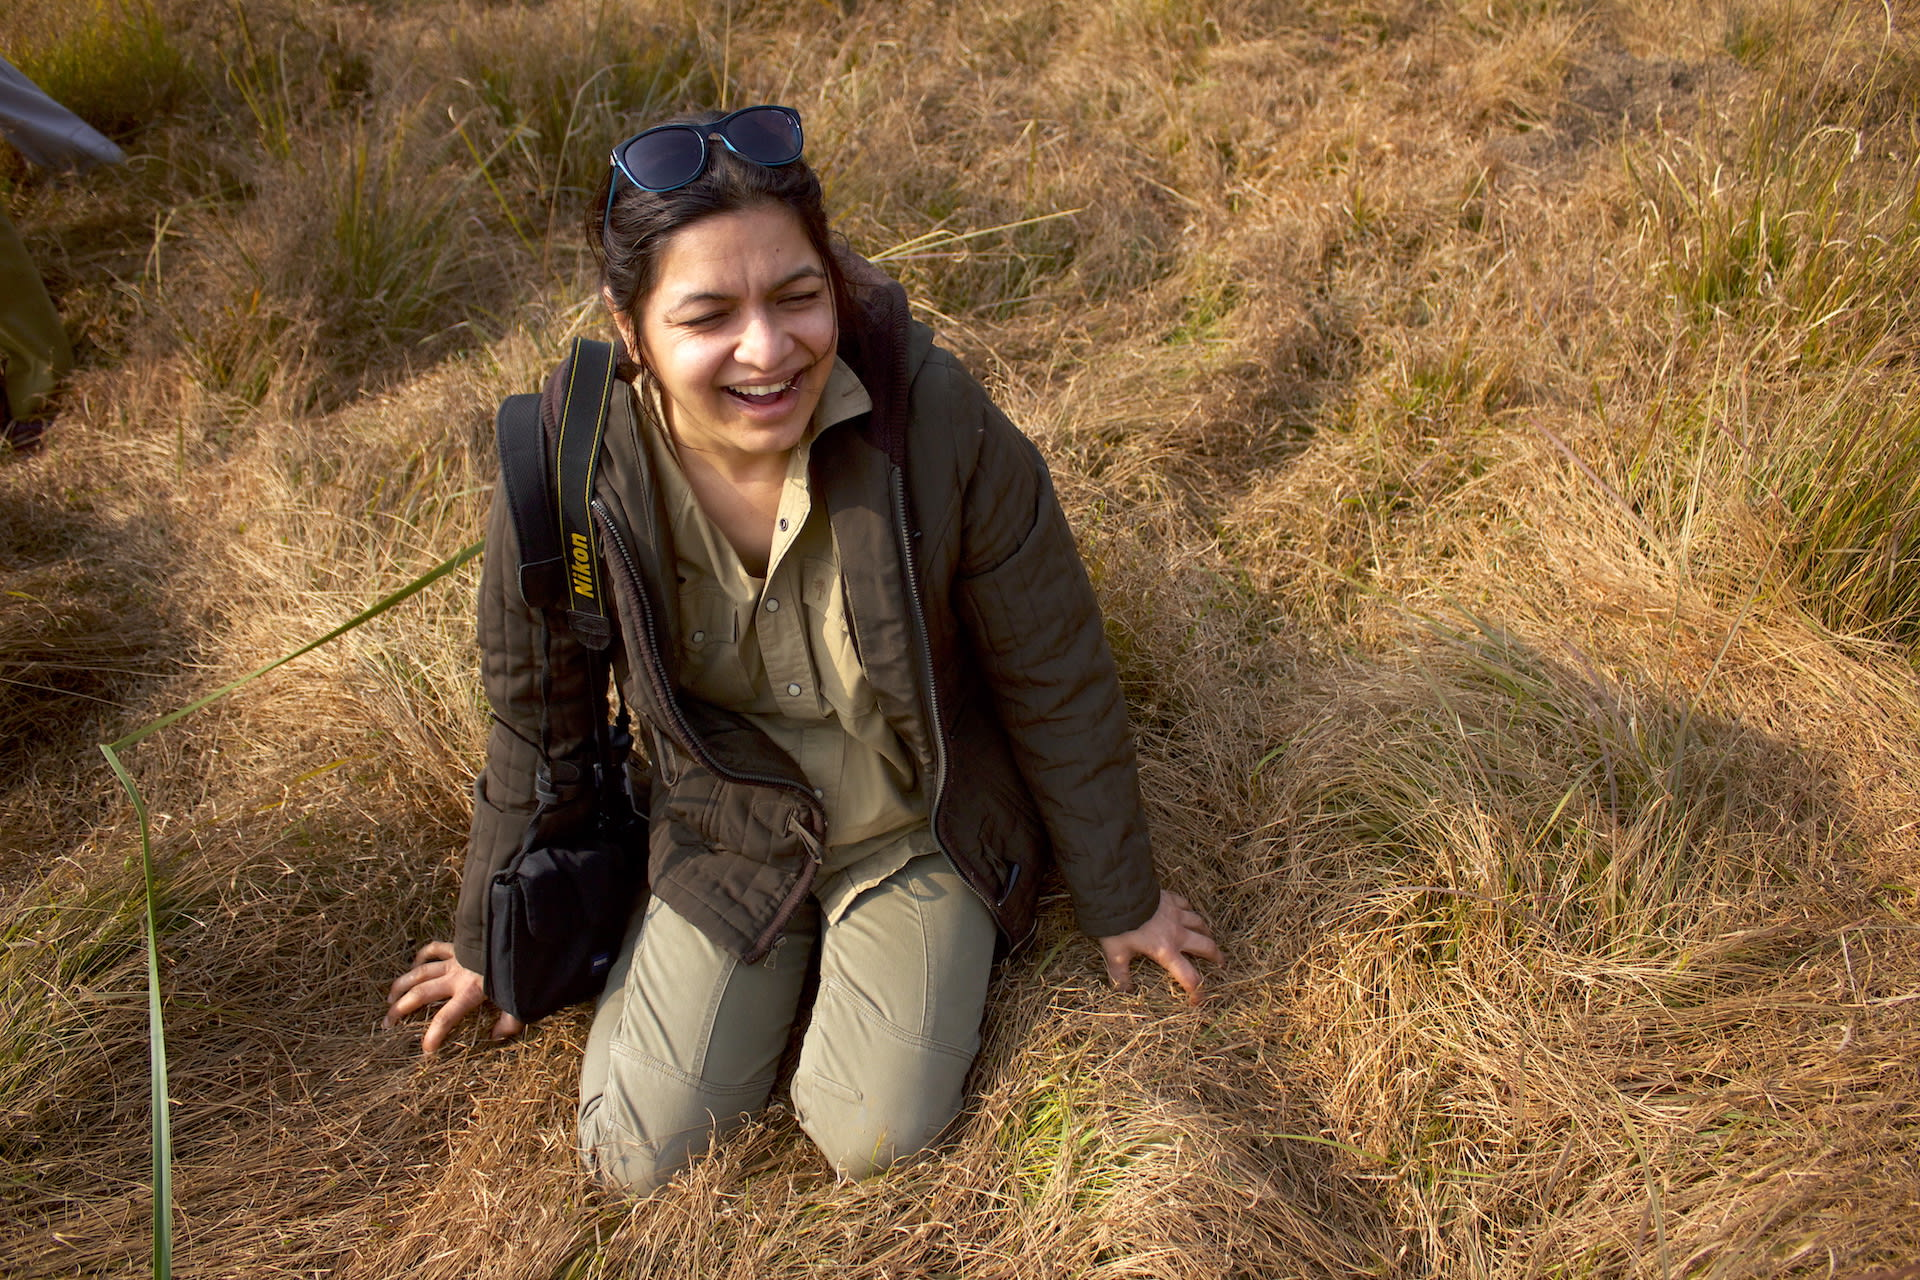 Prerna Singh Bindra has been a journalist, researcher, writer, conservationist, and activist. Photo: Cara Tejpal